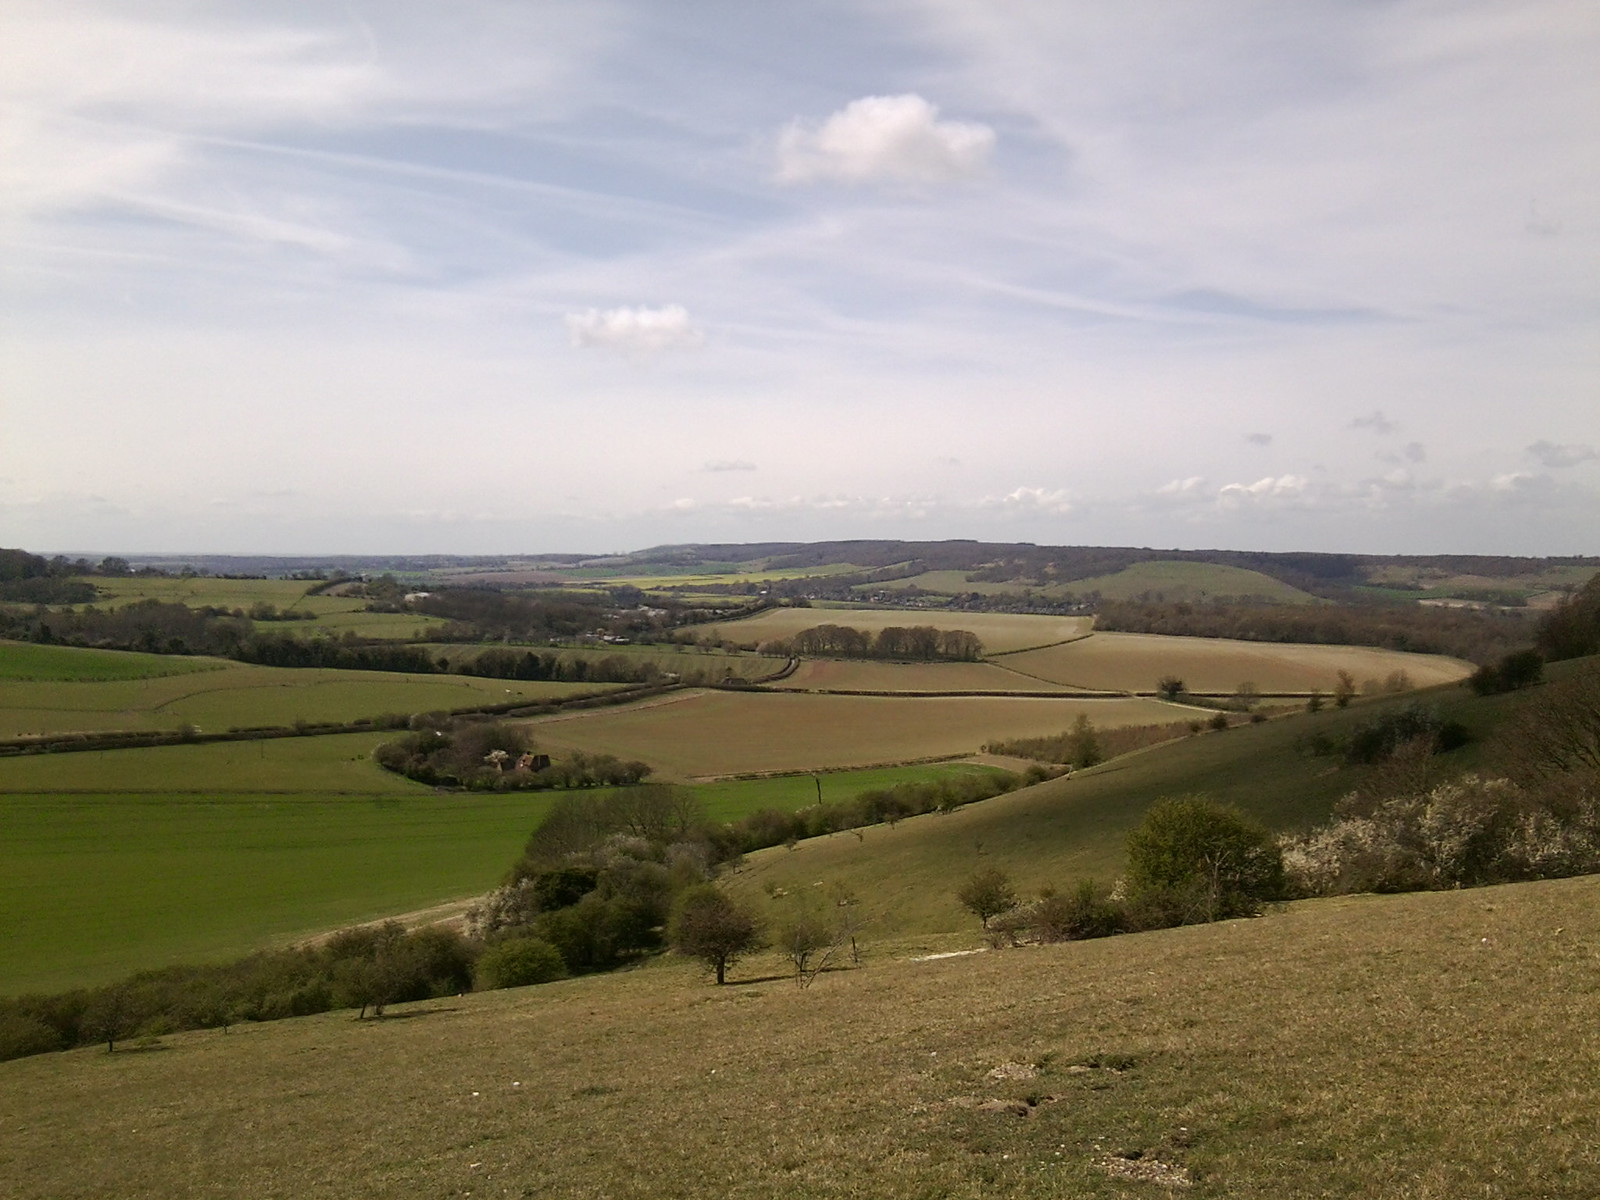 Across the plain Chilham Circular